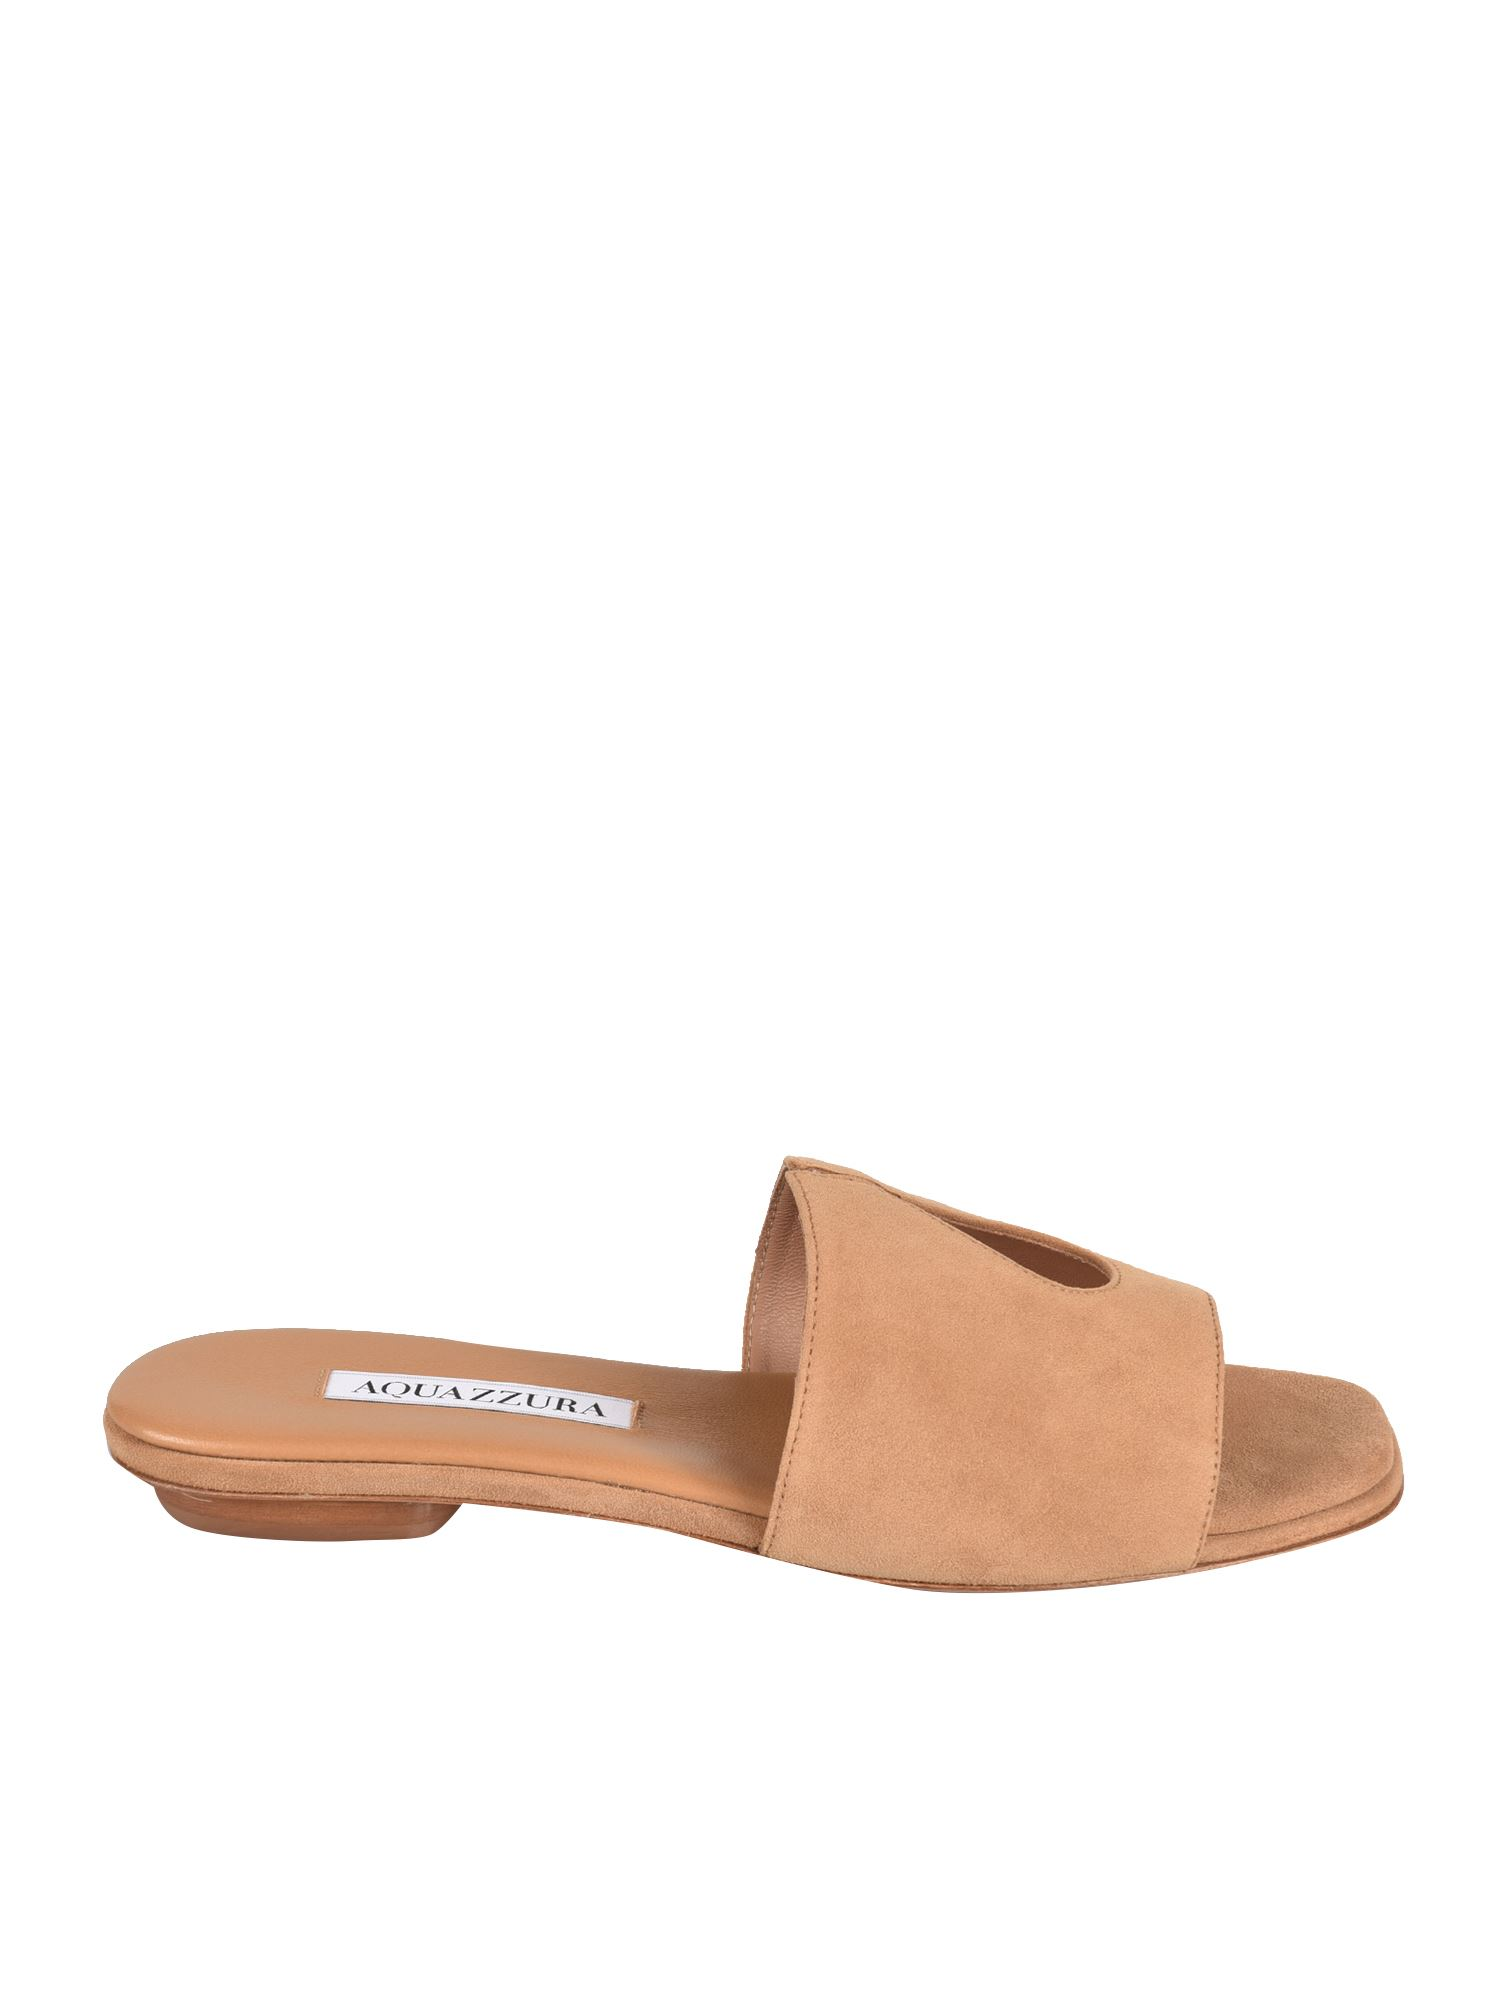 Aquazzura Suedes SEXY THING SLIDES IN SWEET HONEY COLOR